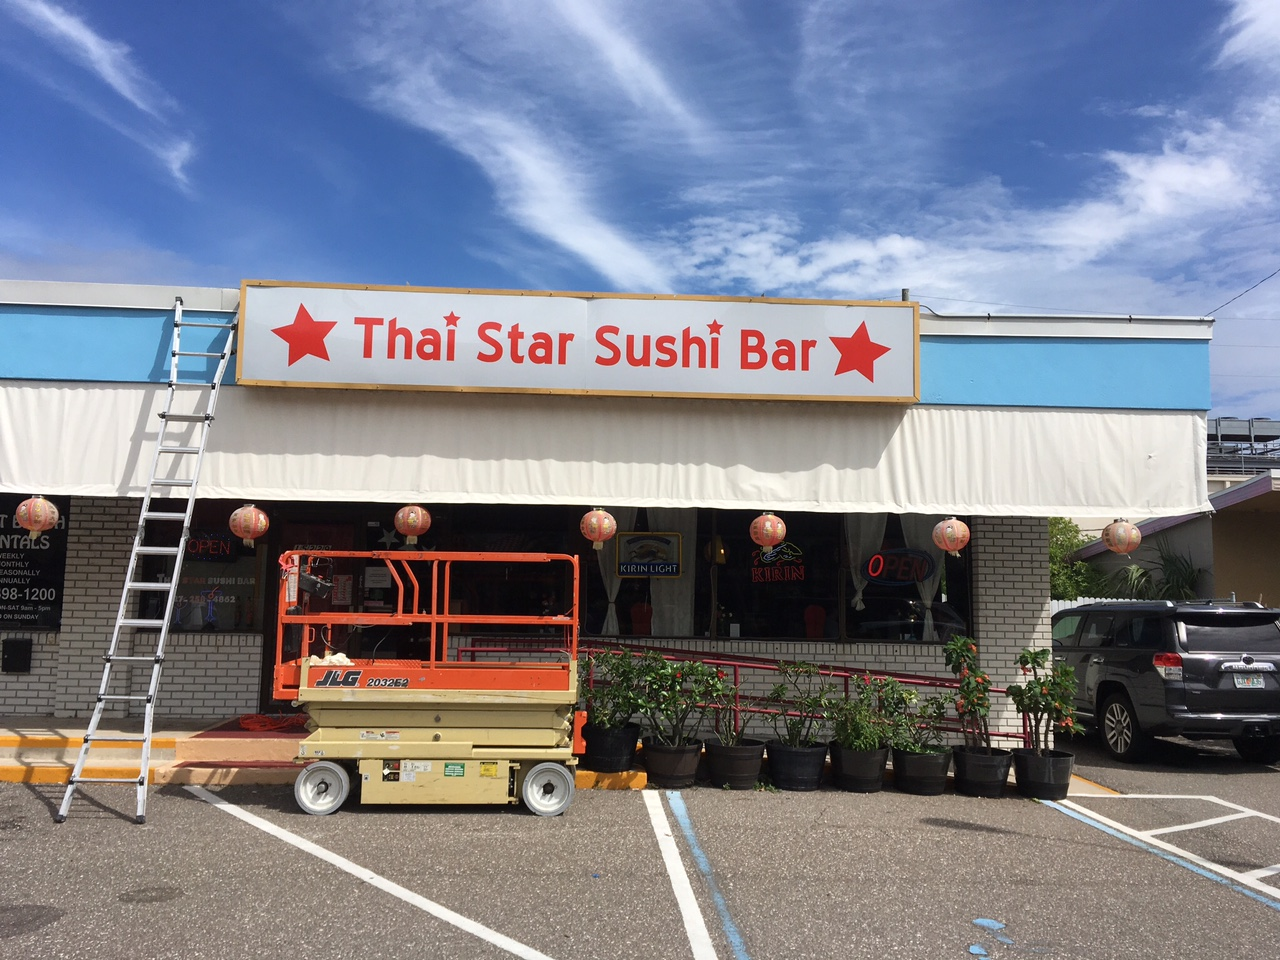 Thai Star Sushi Bar Commercial Storefront Sign Installation